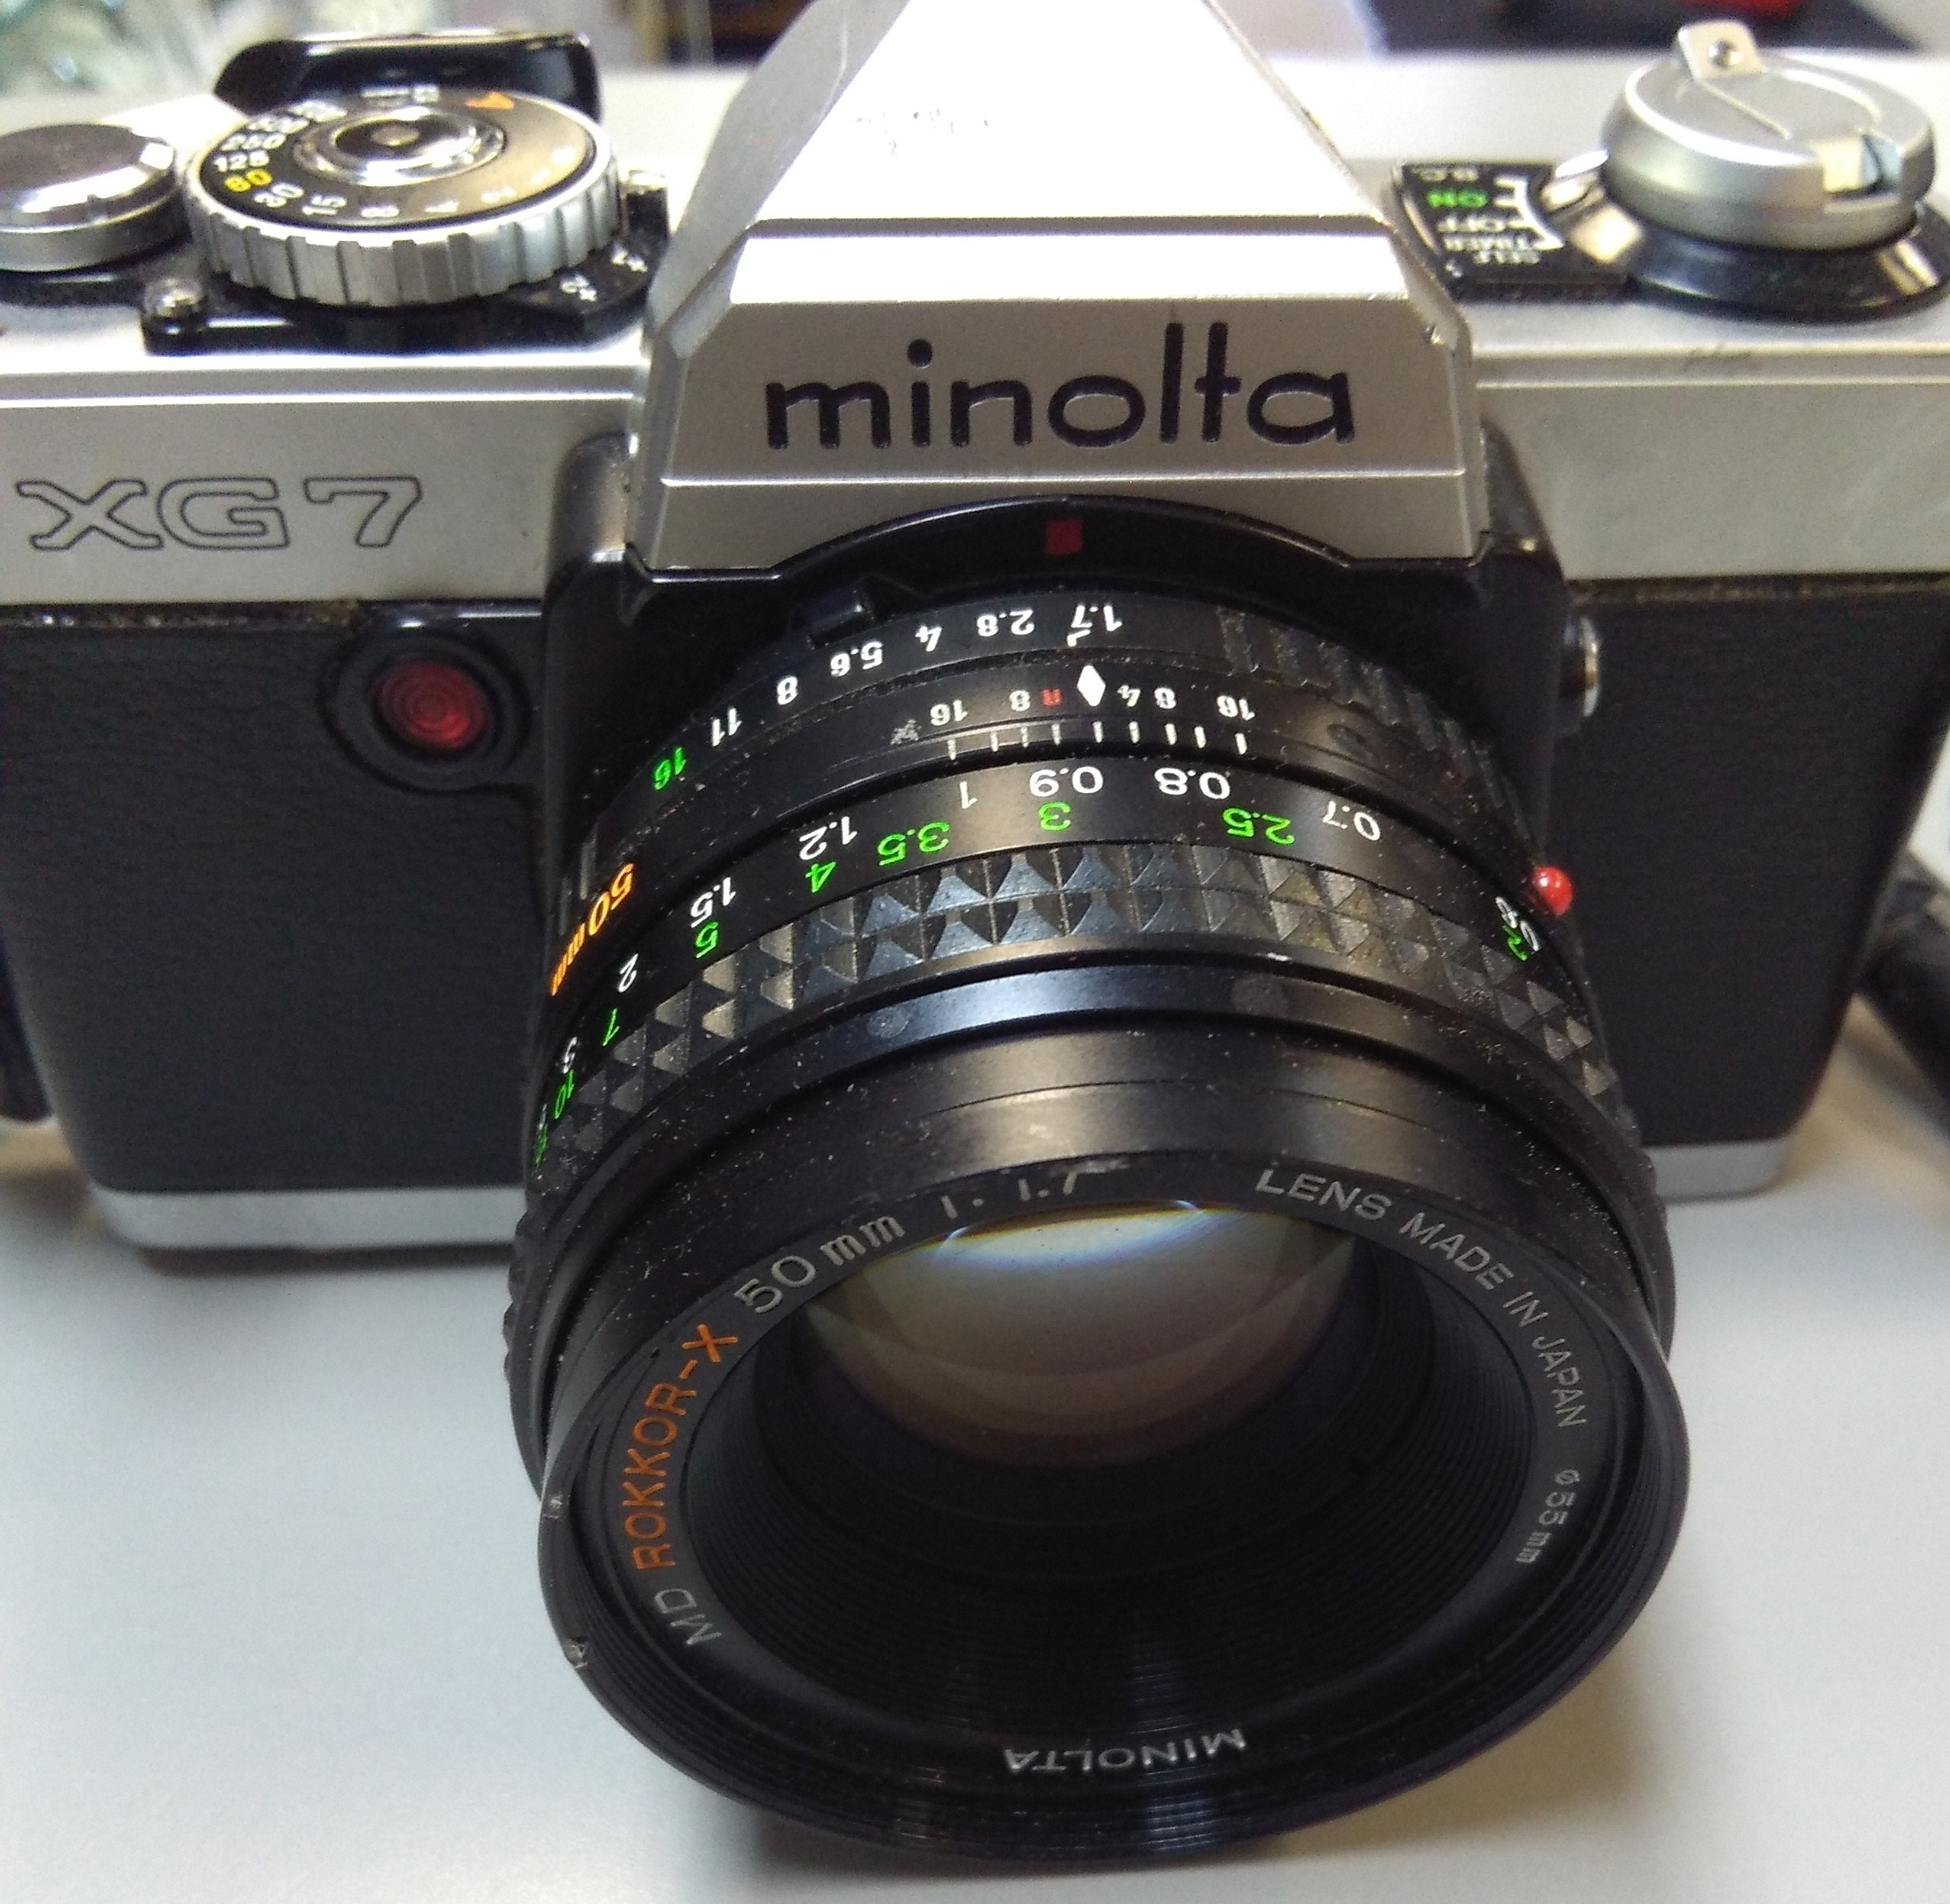 Minolta XG7 35 mm camera with strap